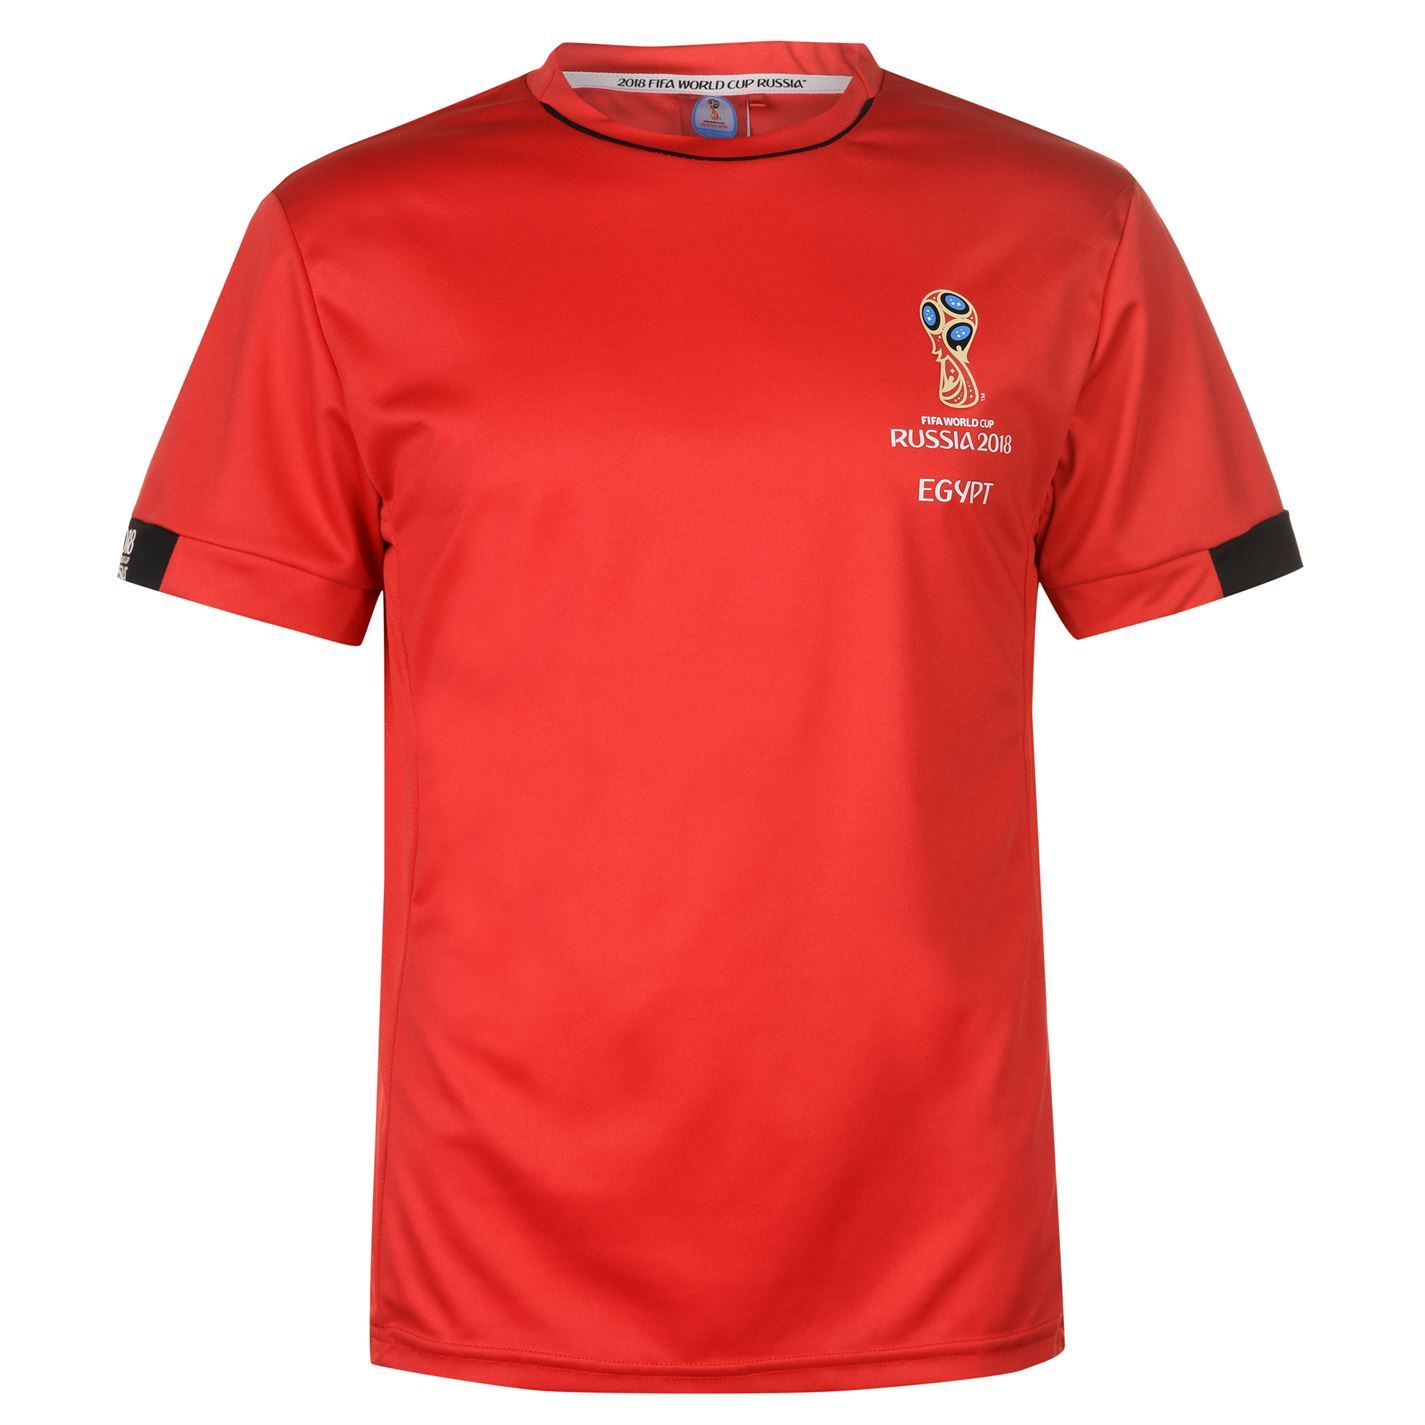 4fe03b198 Details about FIFA World Cup 2018 Egypt T-Shirt Mens Red Football Soccer  Top Tee Shirt